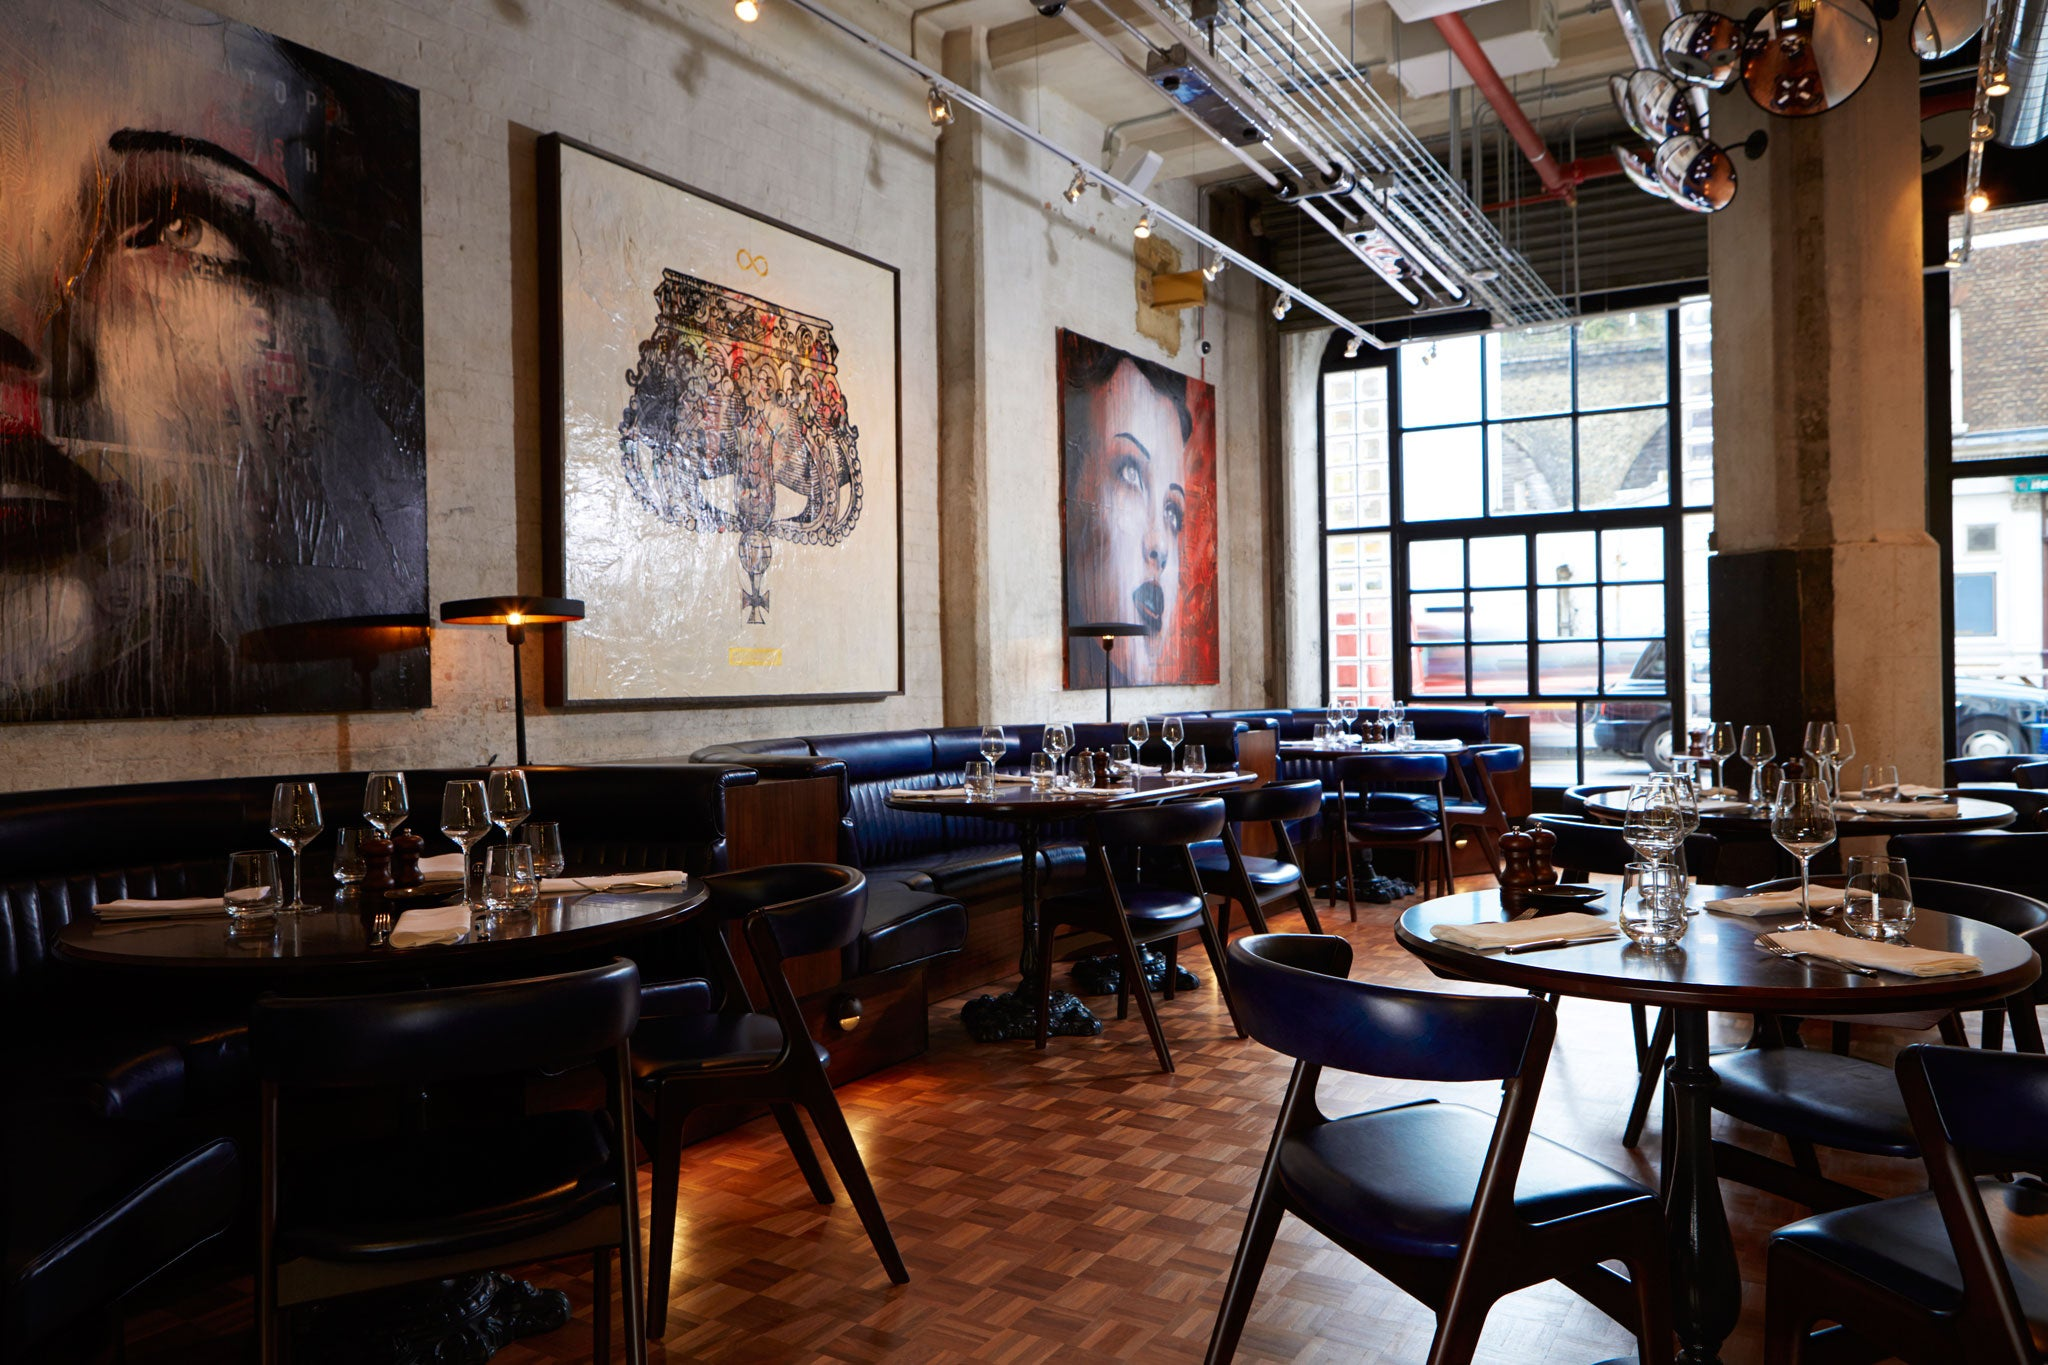 Restaurant review gordon ramsay 39 s union street caf is a - Mobiliario industrial vintage ...